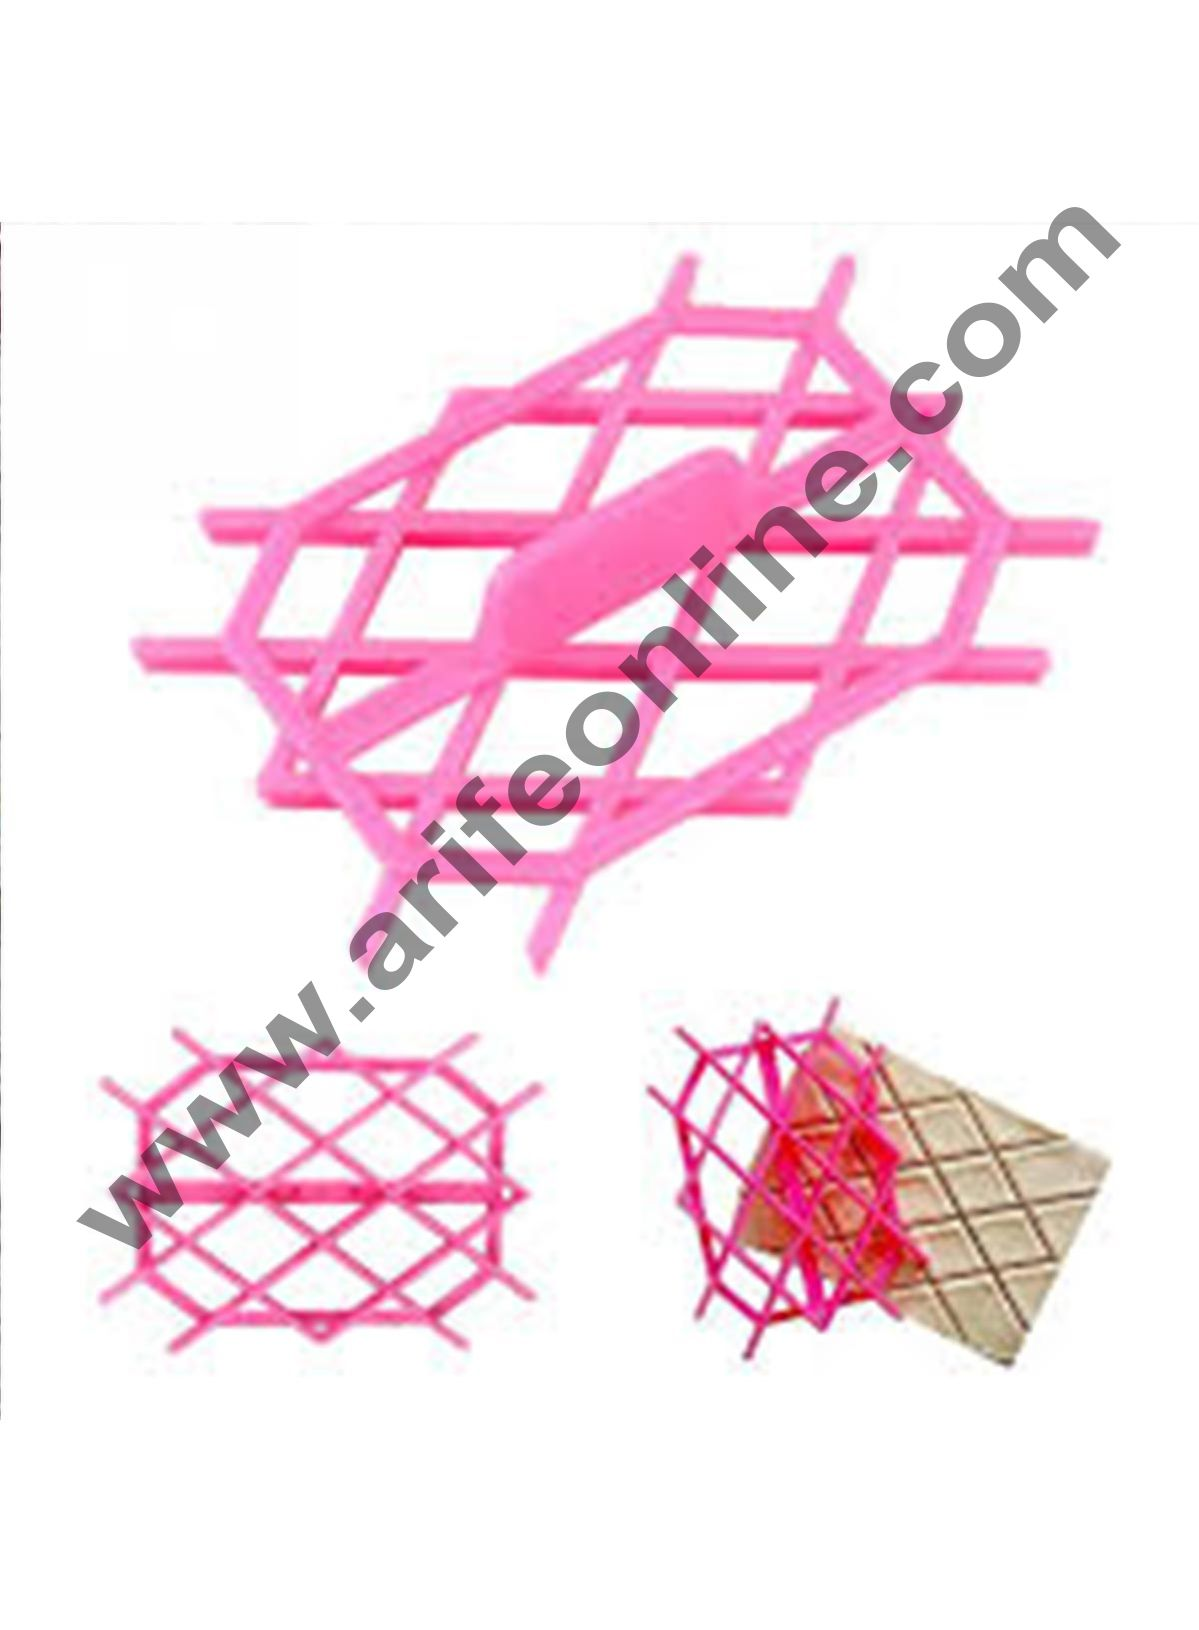 Cake Decor Newest Fondant Cake Tools Equipment Embossing Icing Quilt Molds Mould Cake Decorating Tools